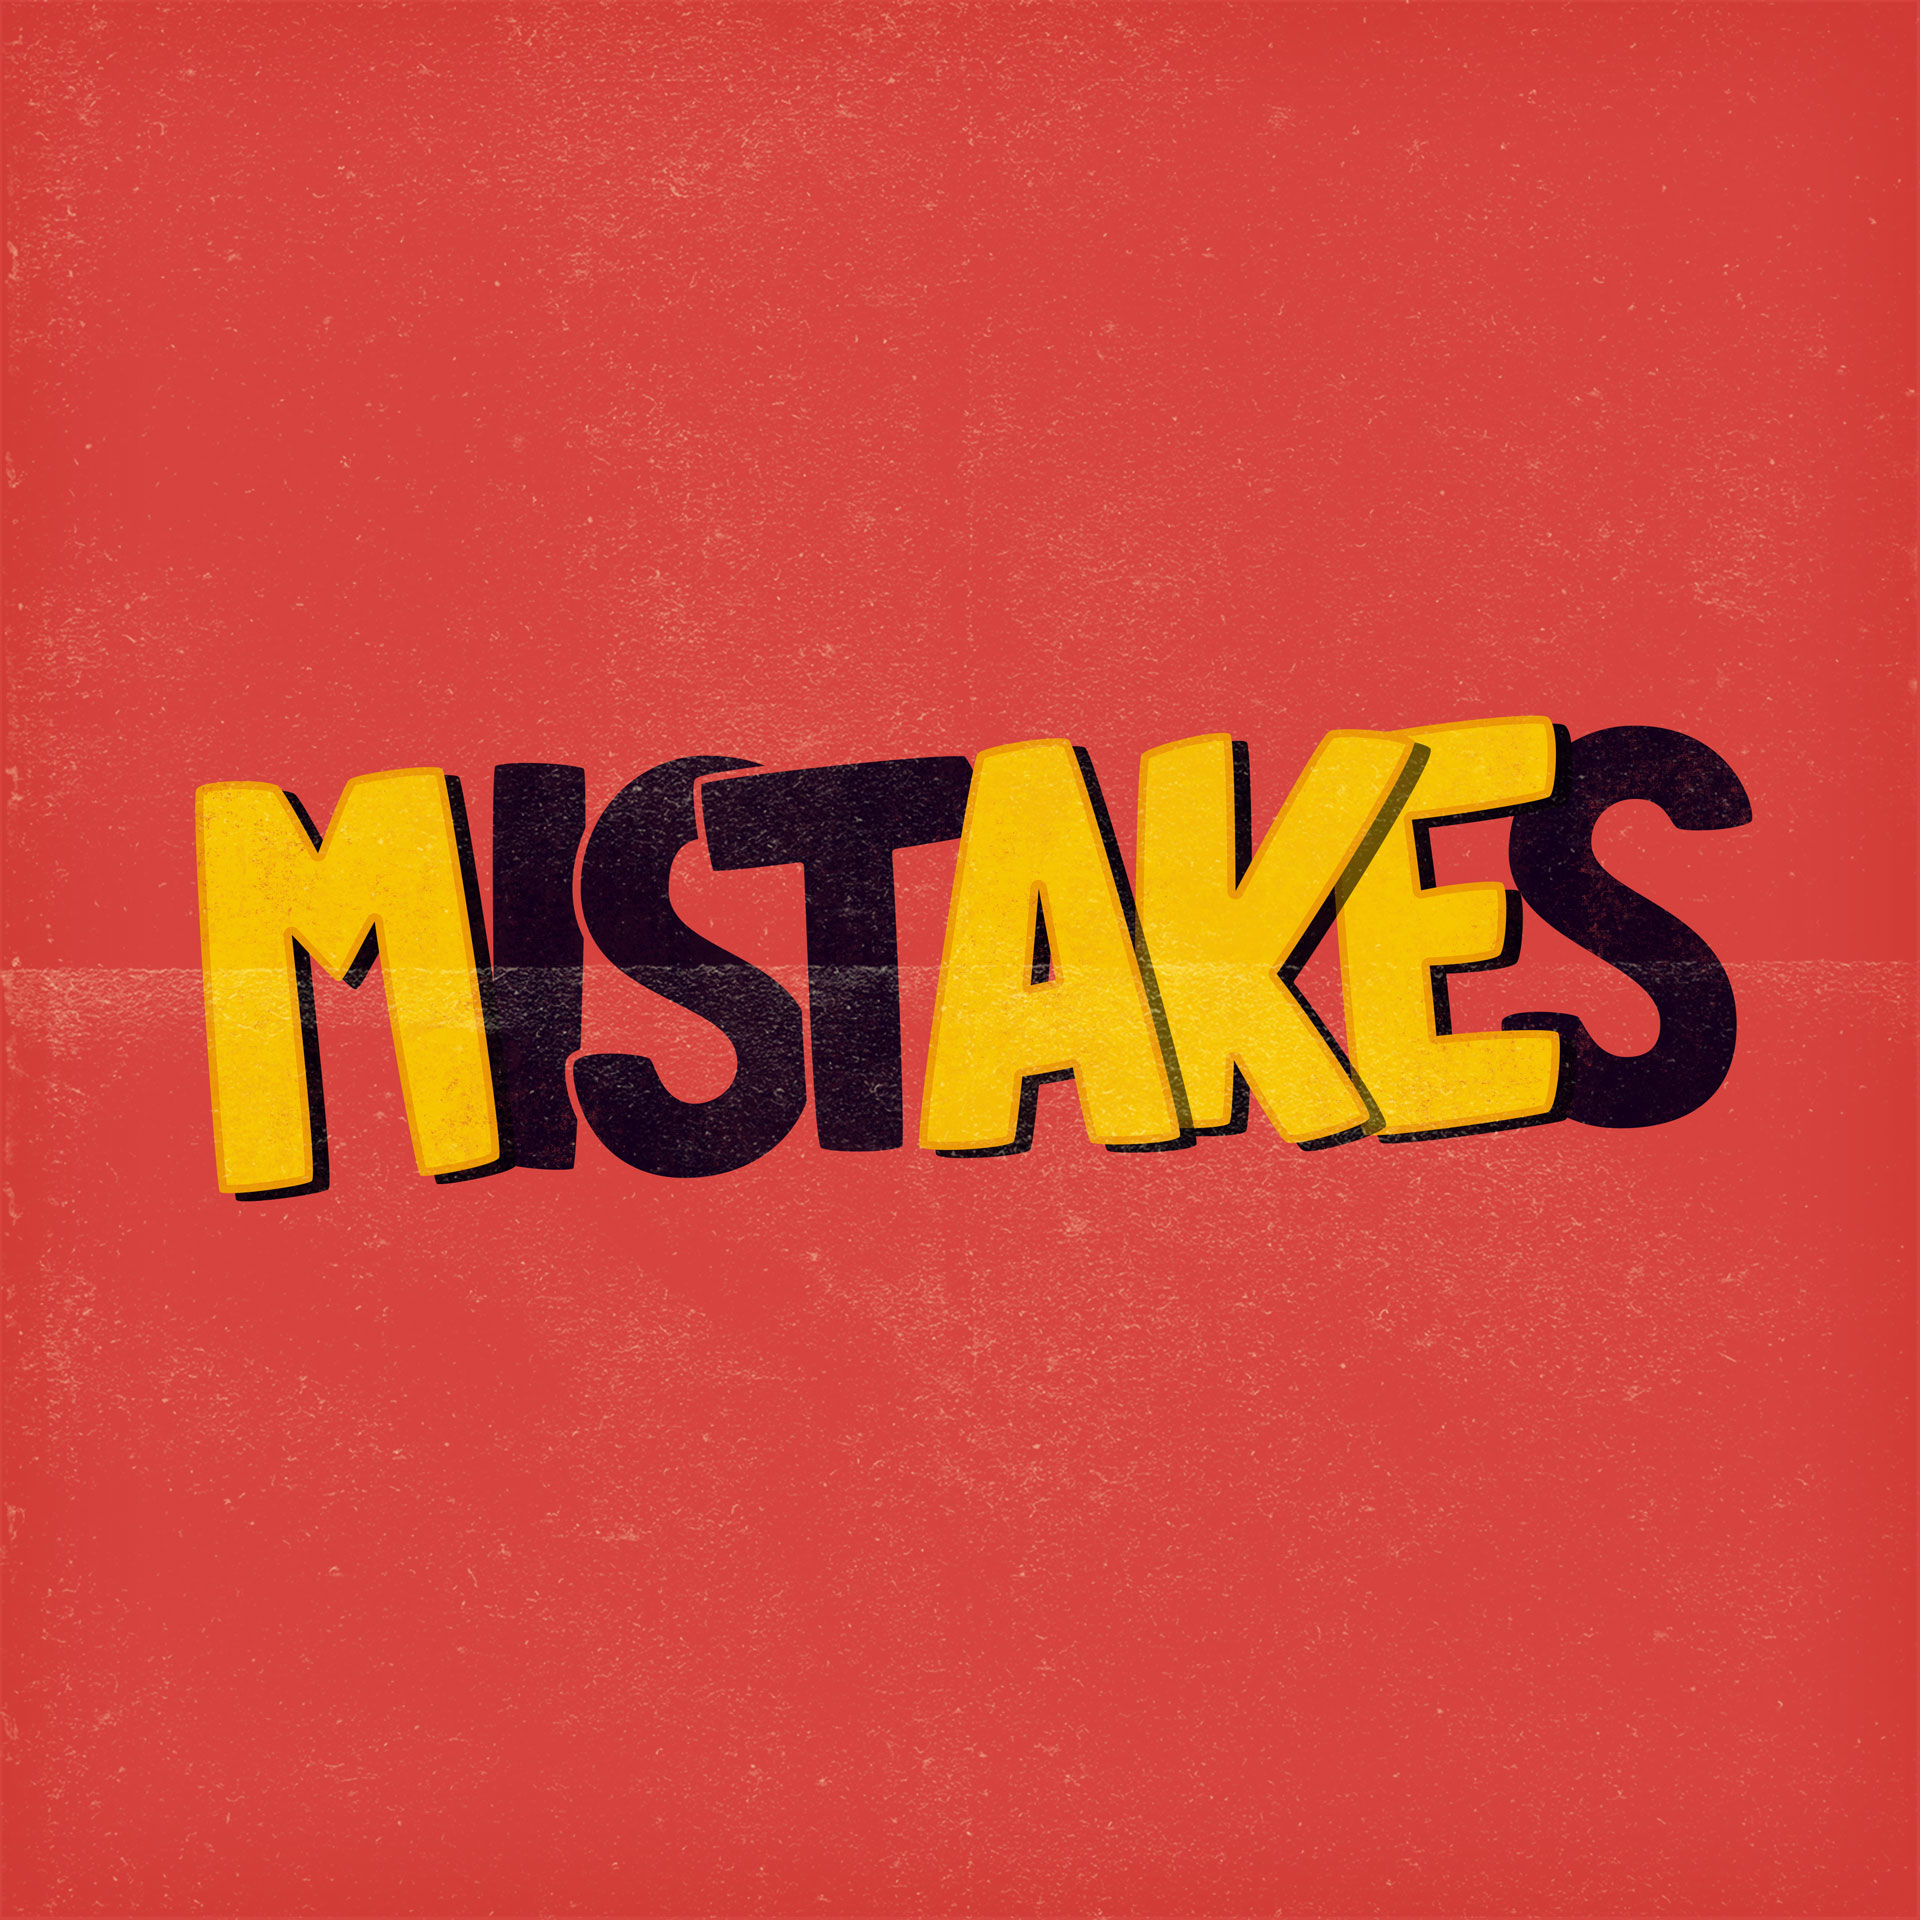 Motivation Monday 11 - Make mistakes